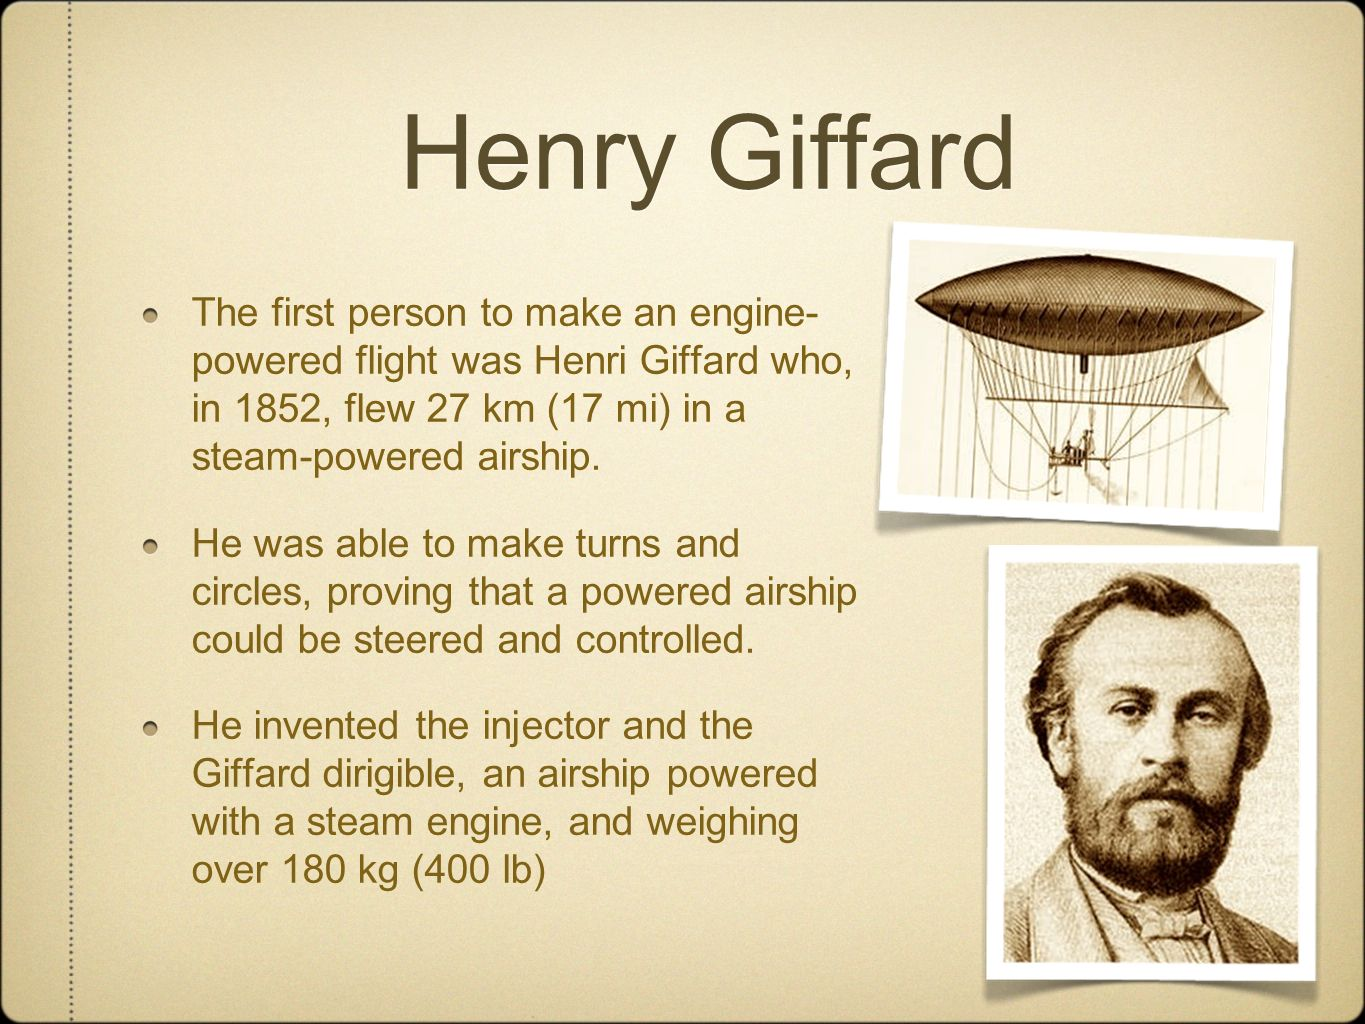 Henry Giffard The first person to make an engine-powered flight was Henri Giffard who, in 1852, flew 27 km (17 mi) in a steam-powered airship.